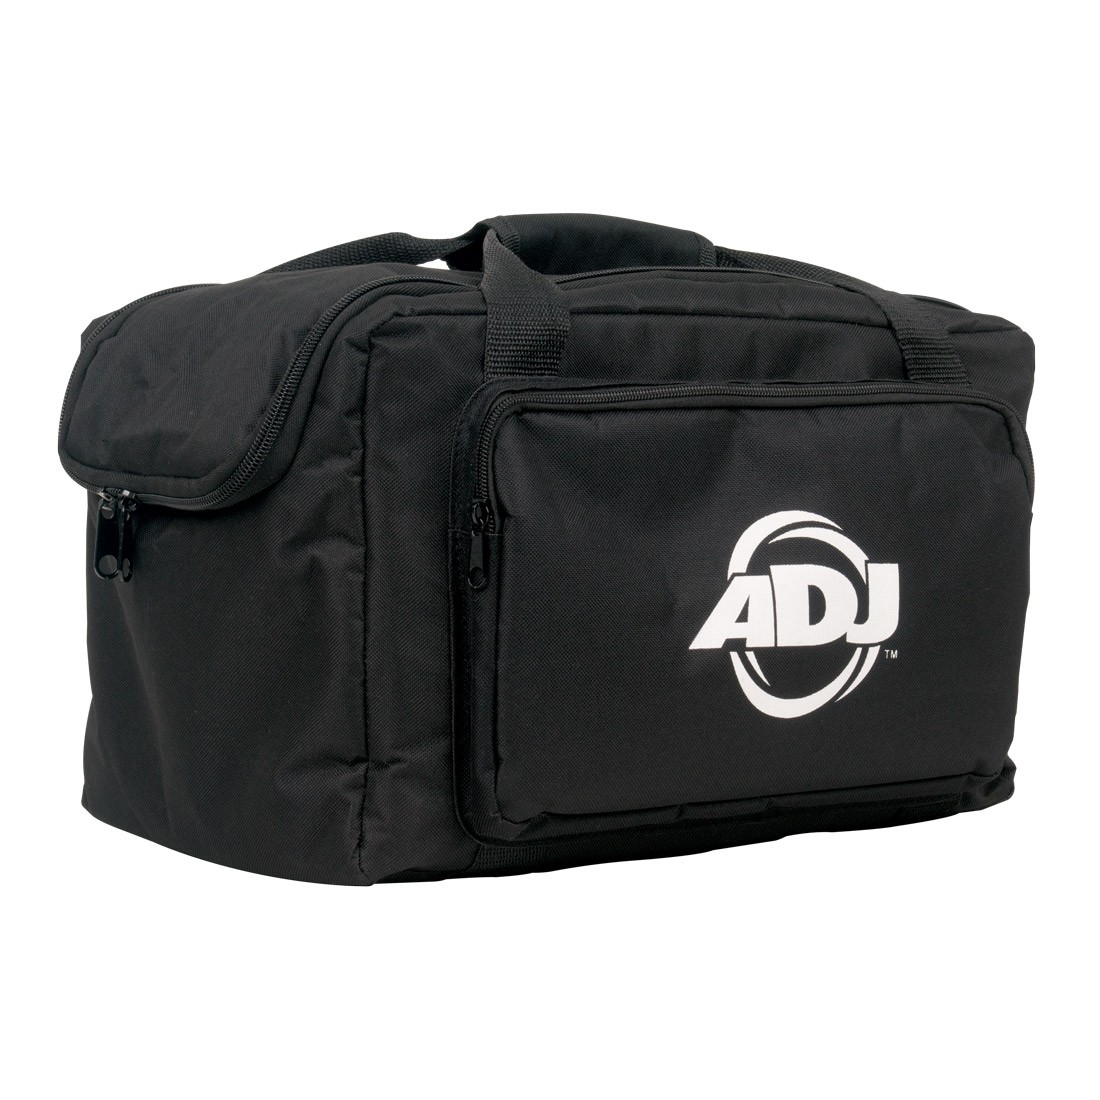 Image of   ADJ Flat Par Bag 4